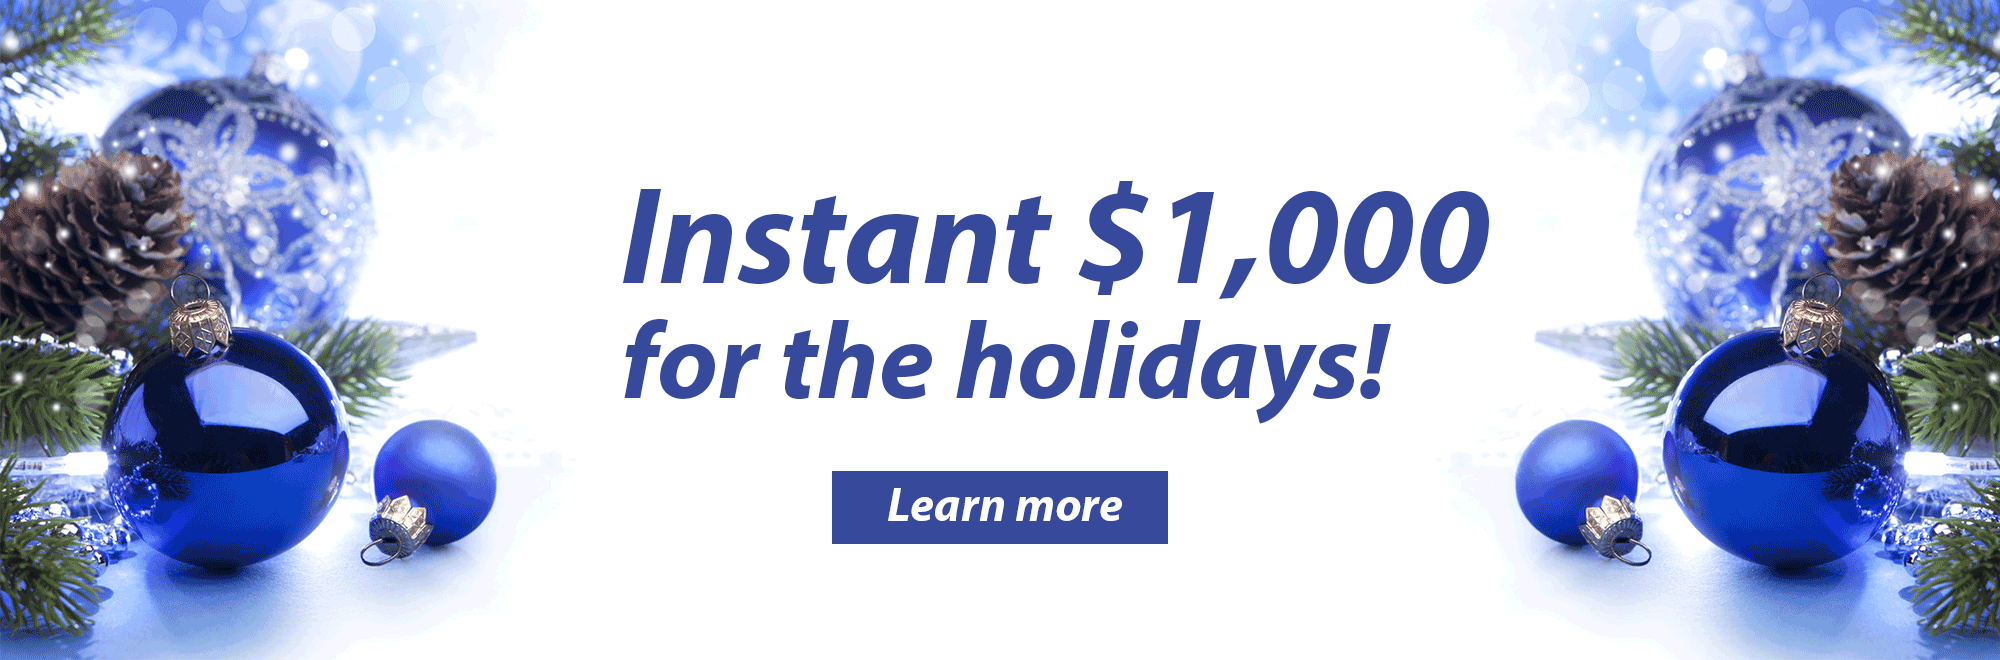 Holiday Loans. Instant $1,000 for the Holidays.